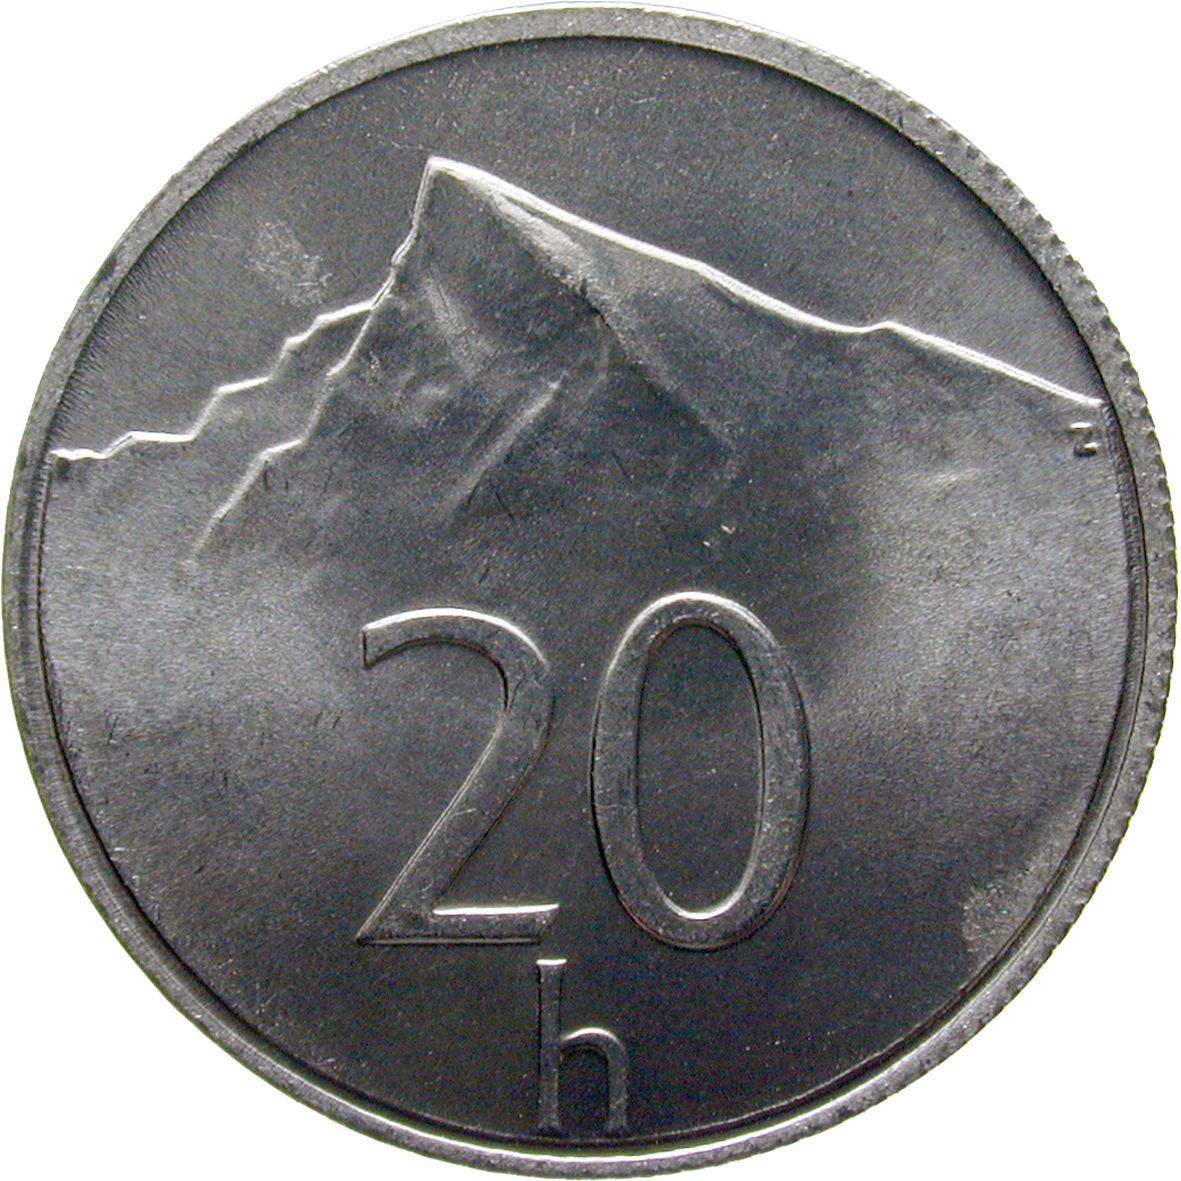 Slovak Republic, 20 Haliers 1999 (reverse)